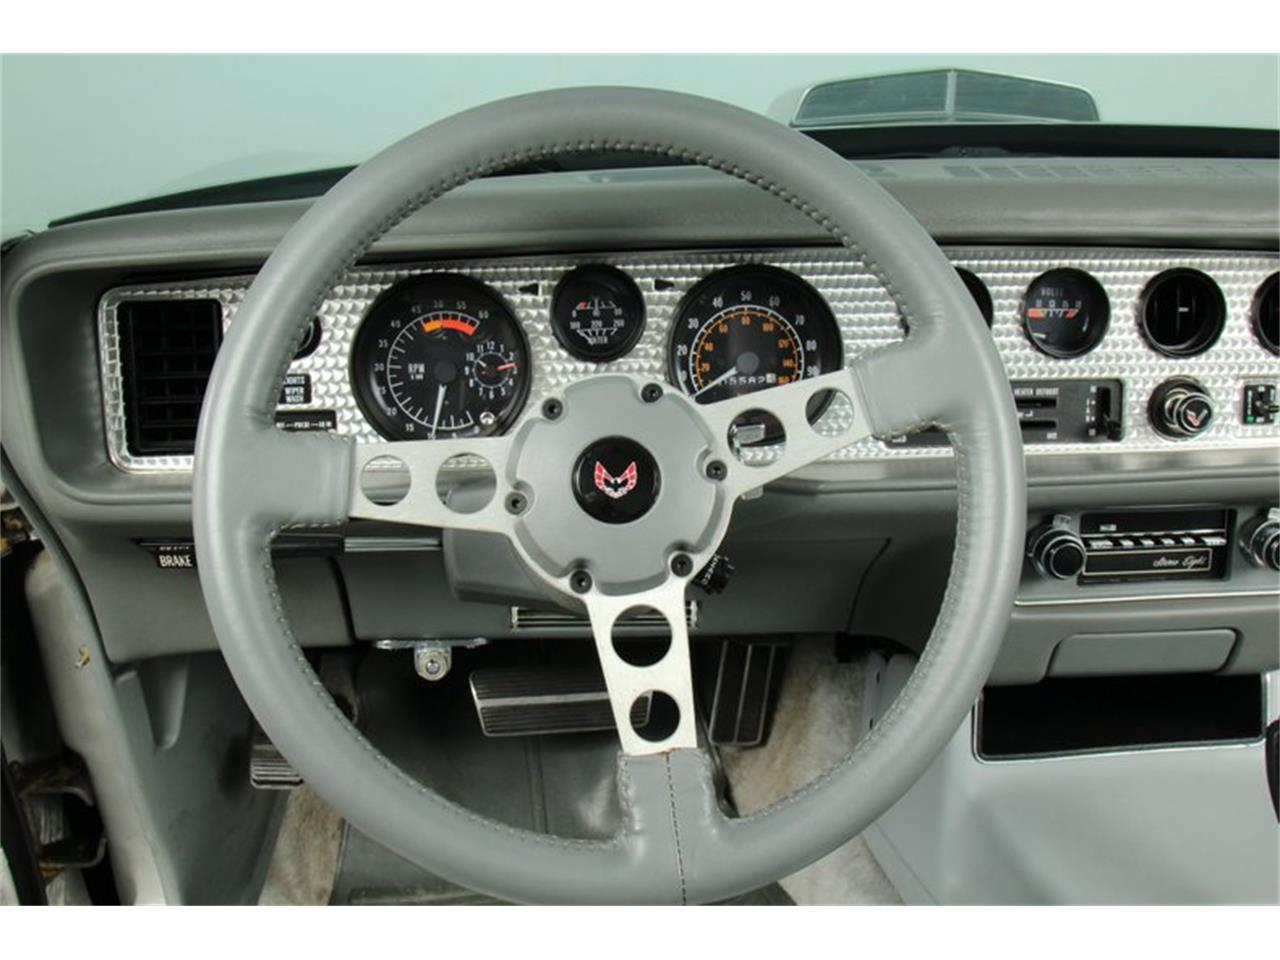 Large Picture of '79 Firebird Trans Am located in Elyria Ohio - $39,900.00 Offered by Sunnyside Chevrolet - Q6YC